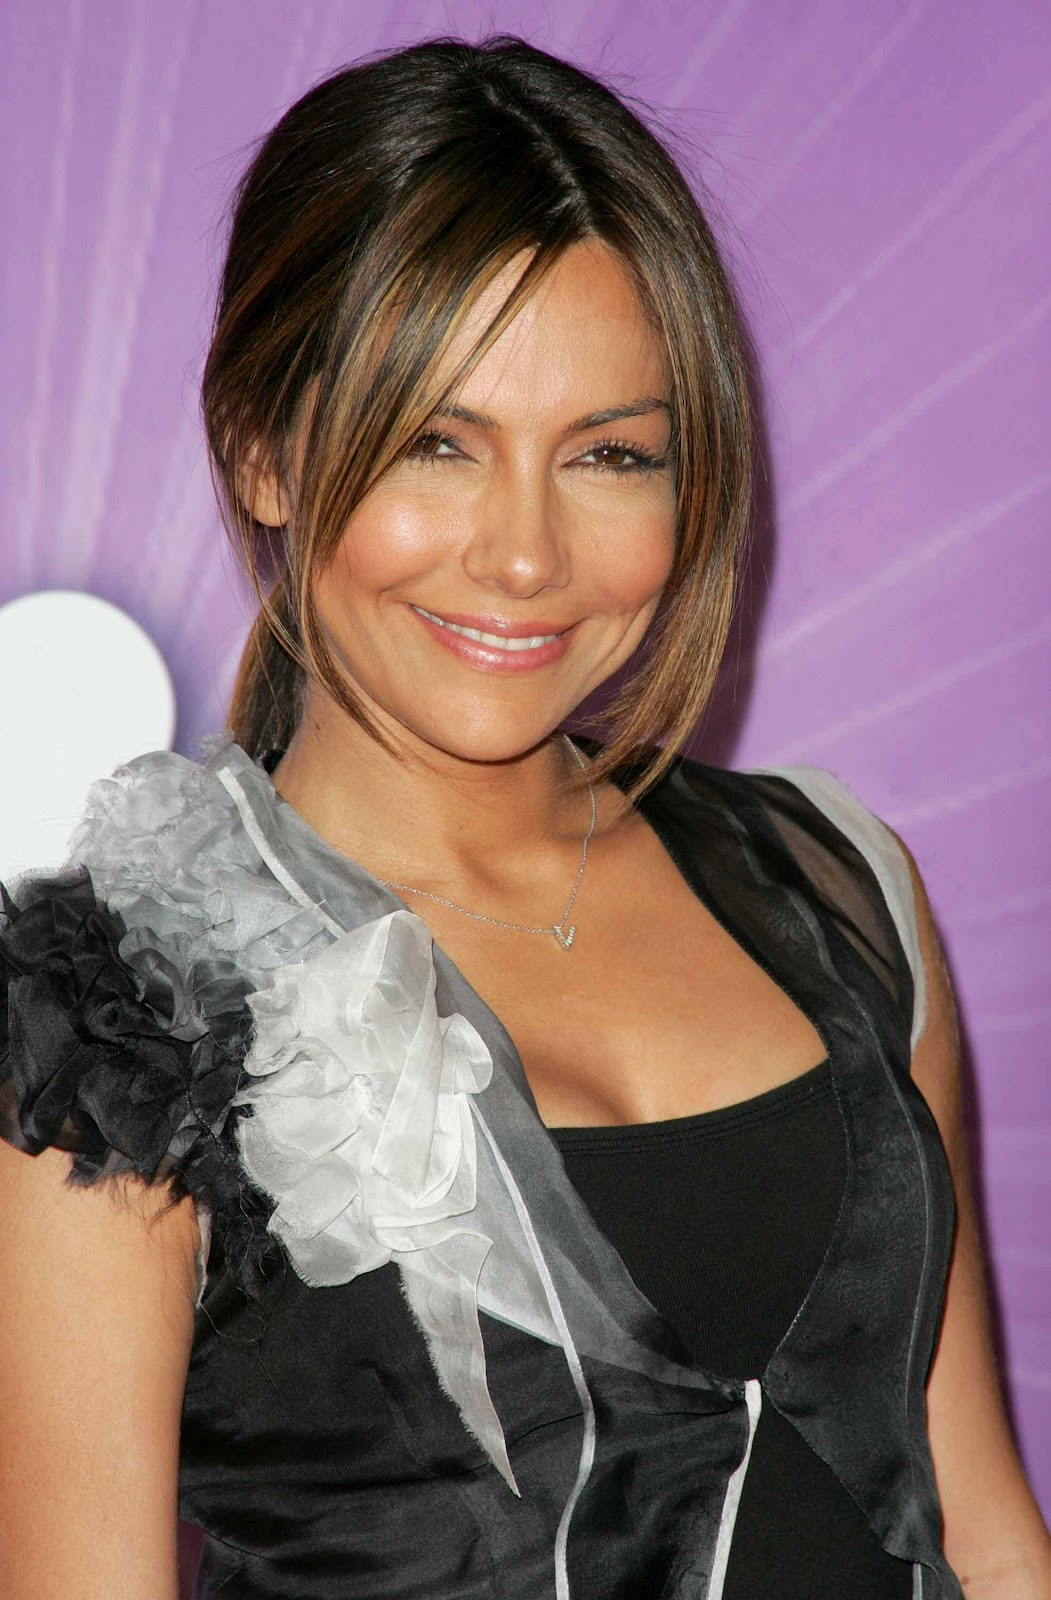 Leaked Vanessa Marcil naked (58 images), Is a cute